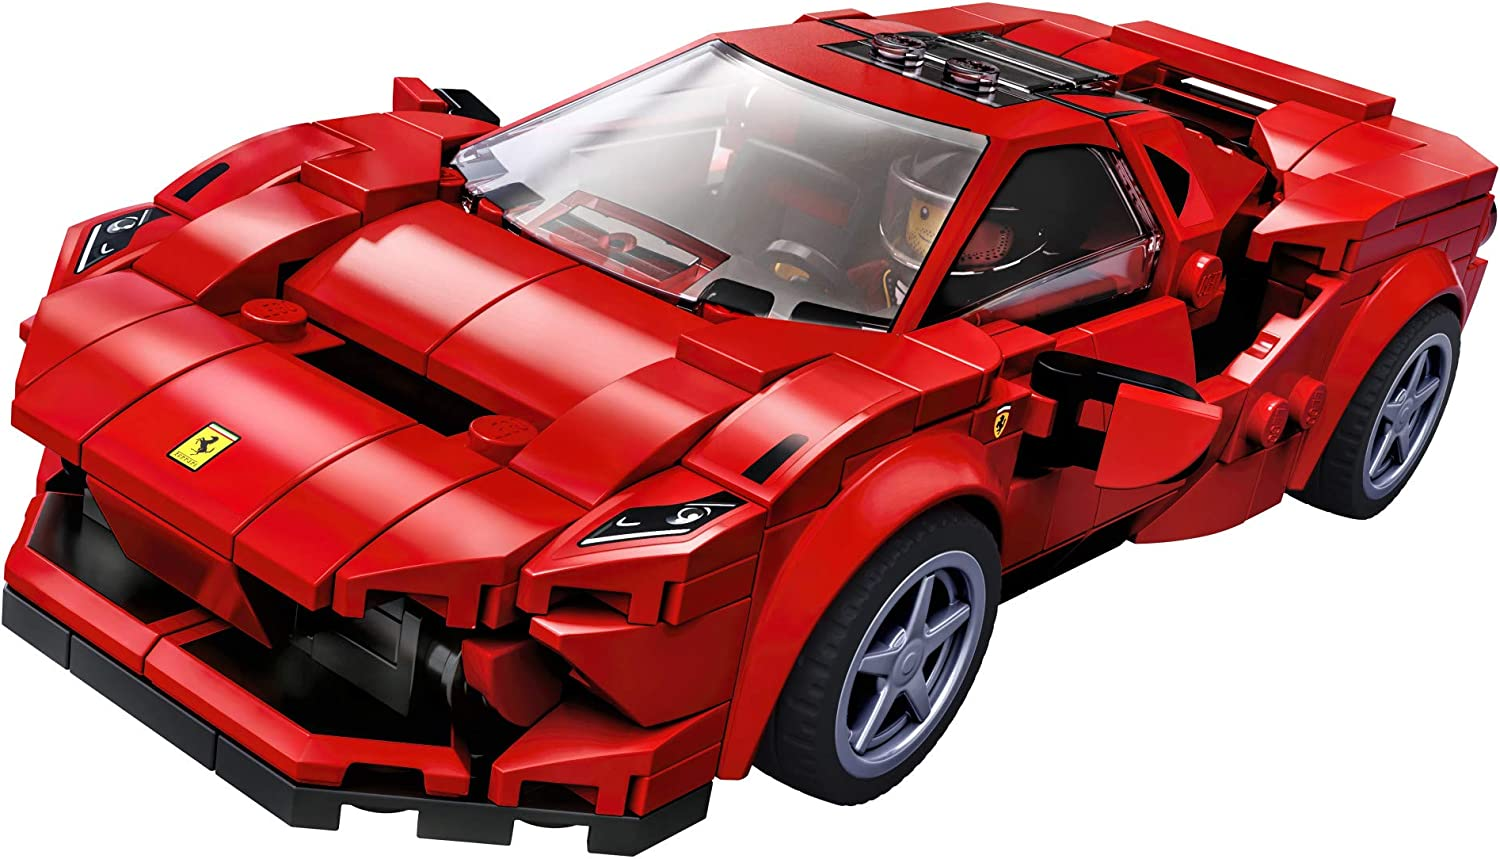 Up to 20% OFF LEGO Replica Car Kits - Amazon